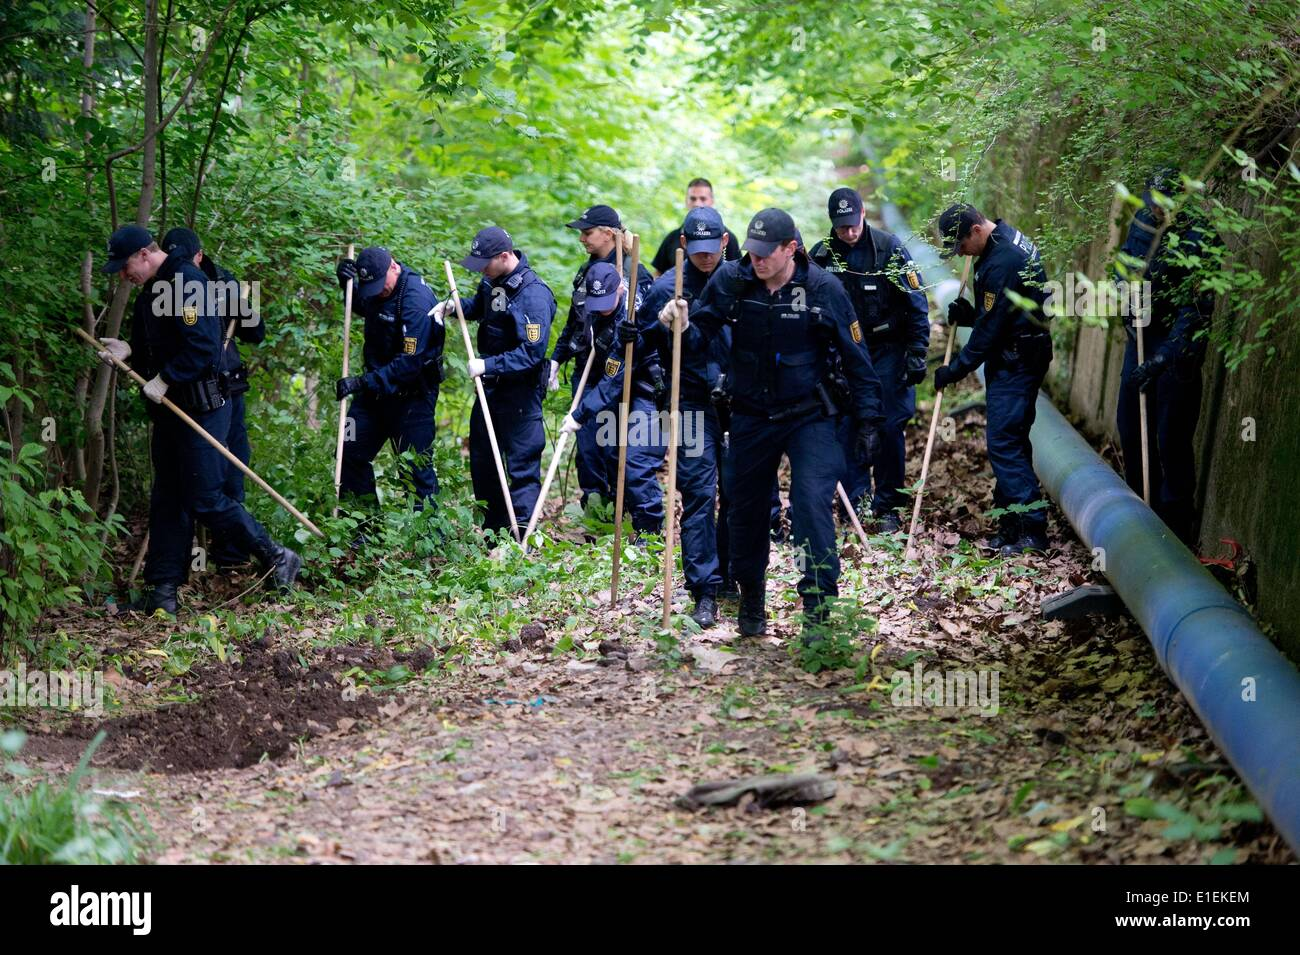 Stuttgart, Germany. 02nd June, 2014. Police officers search for clues at the site where two dead bodies were found in the Palace Garden in Stuttgart, Germany, 02 June 2014. The dead bodies of a woman and a man had been found in suitcases in the park by passers-by in the park the day before. Photo: SEBASTIAN KAHNERT/DPA/Alamy Live News - Stock Image